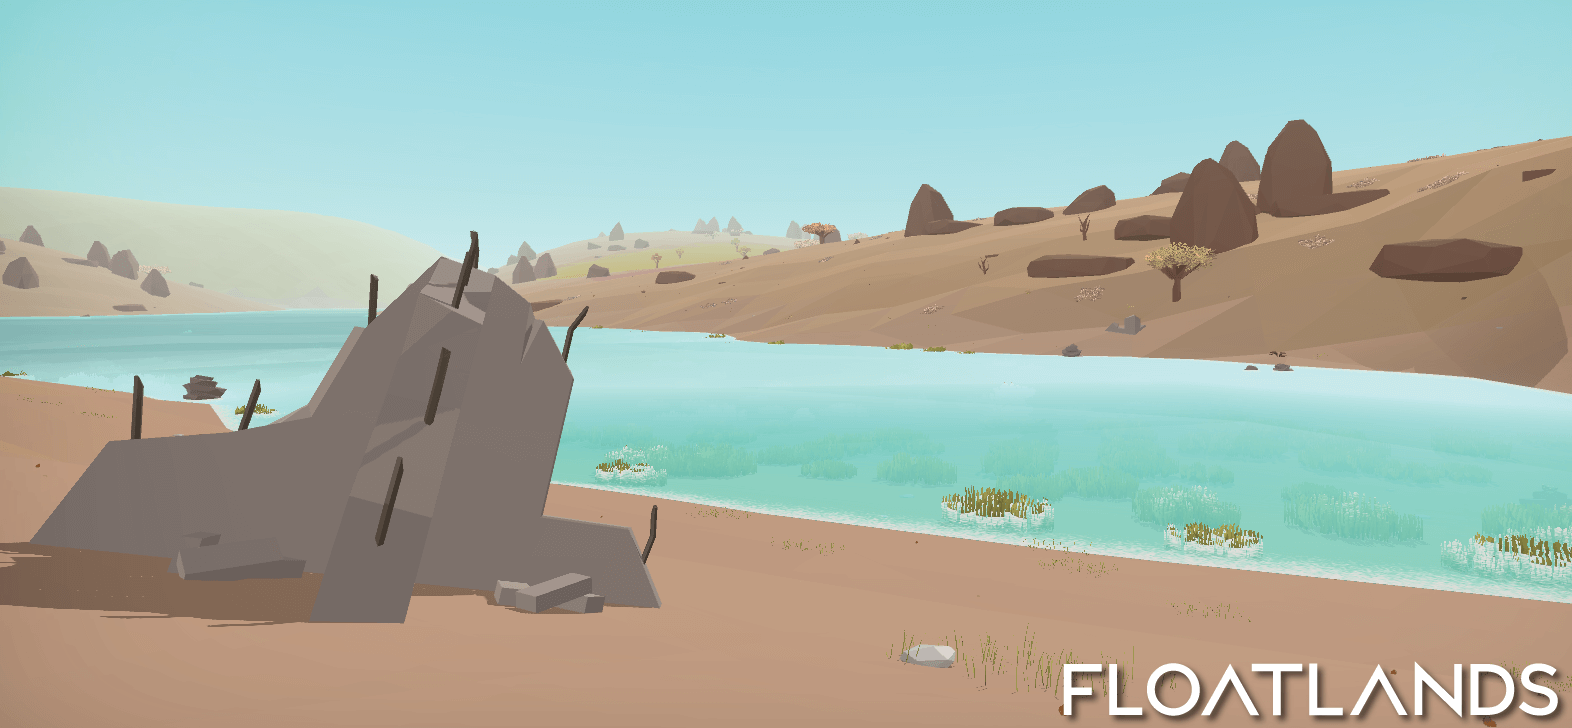 riverbanks trees floating stones ruins riverbank lowpoly floatlands